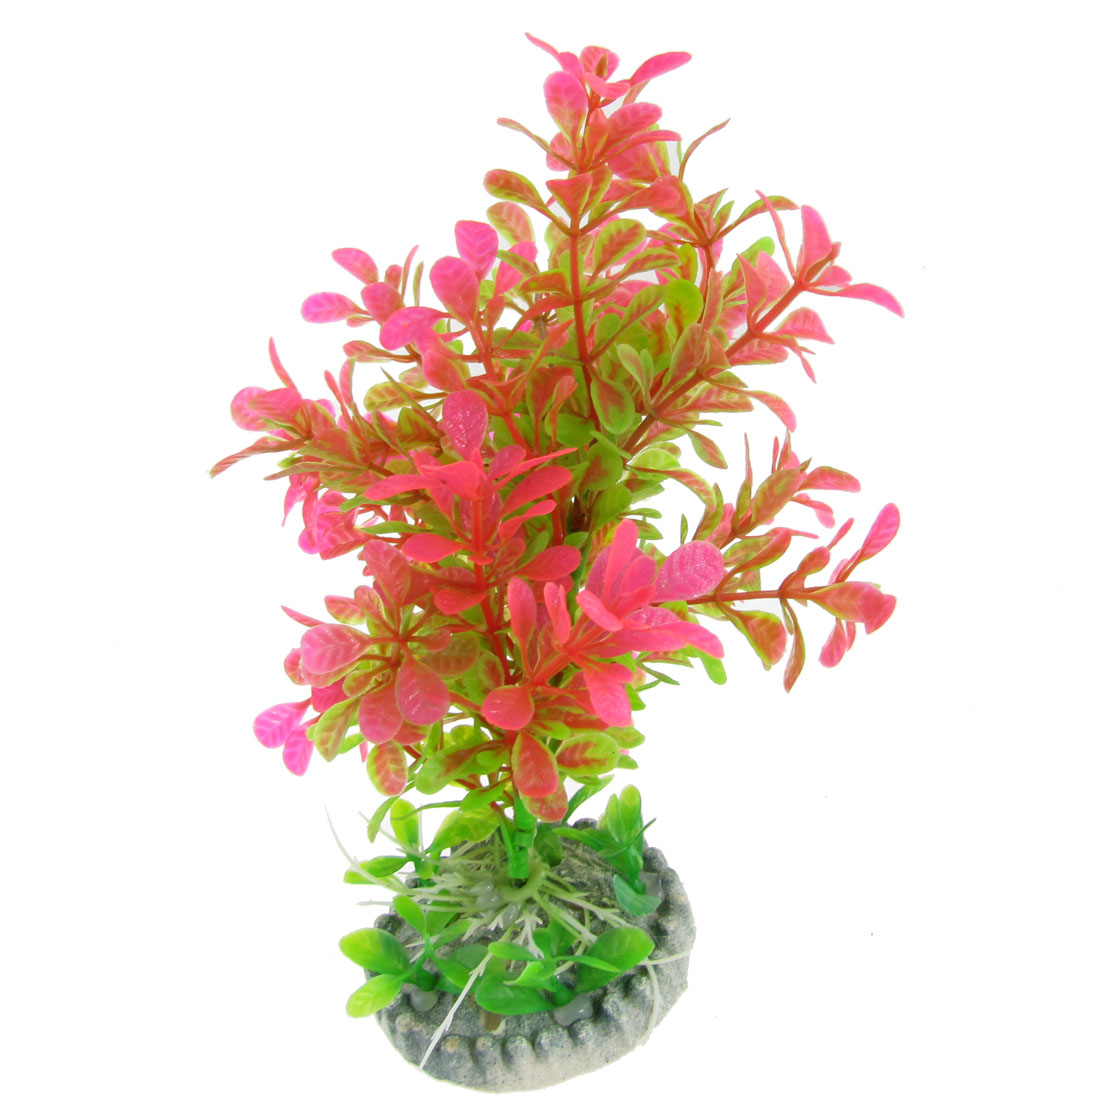 "6.9"" High Fuchsia Green Plastic Emulational Underwater Plants Grass Decor for Aquarium"